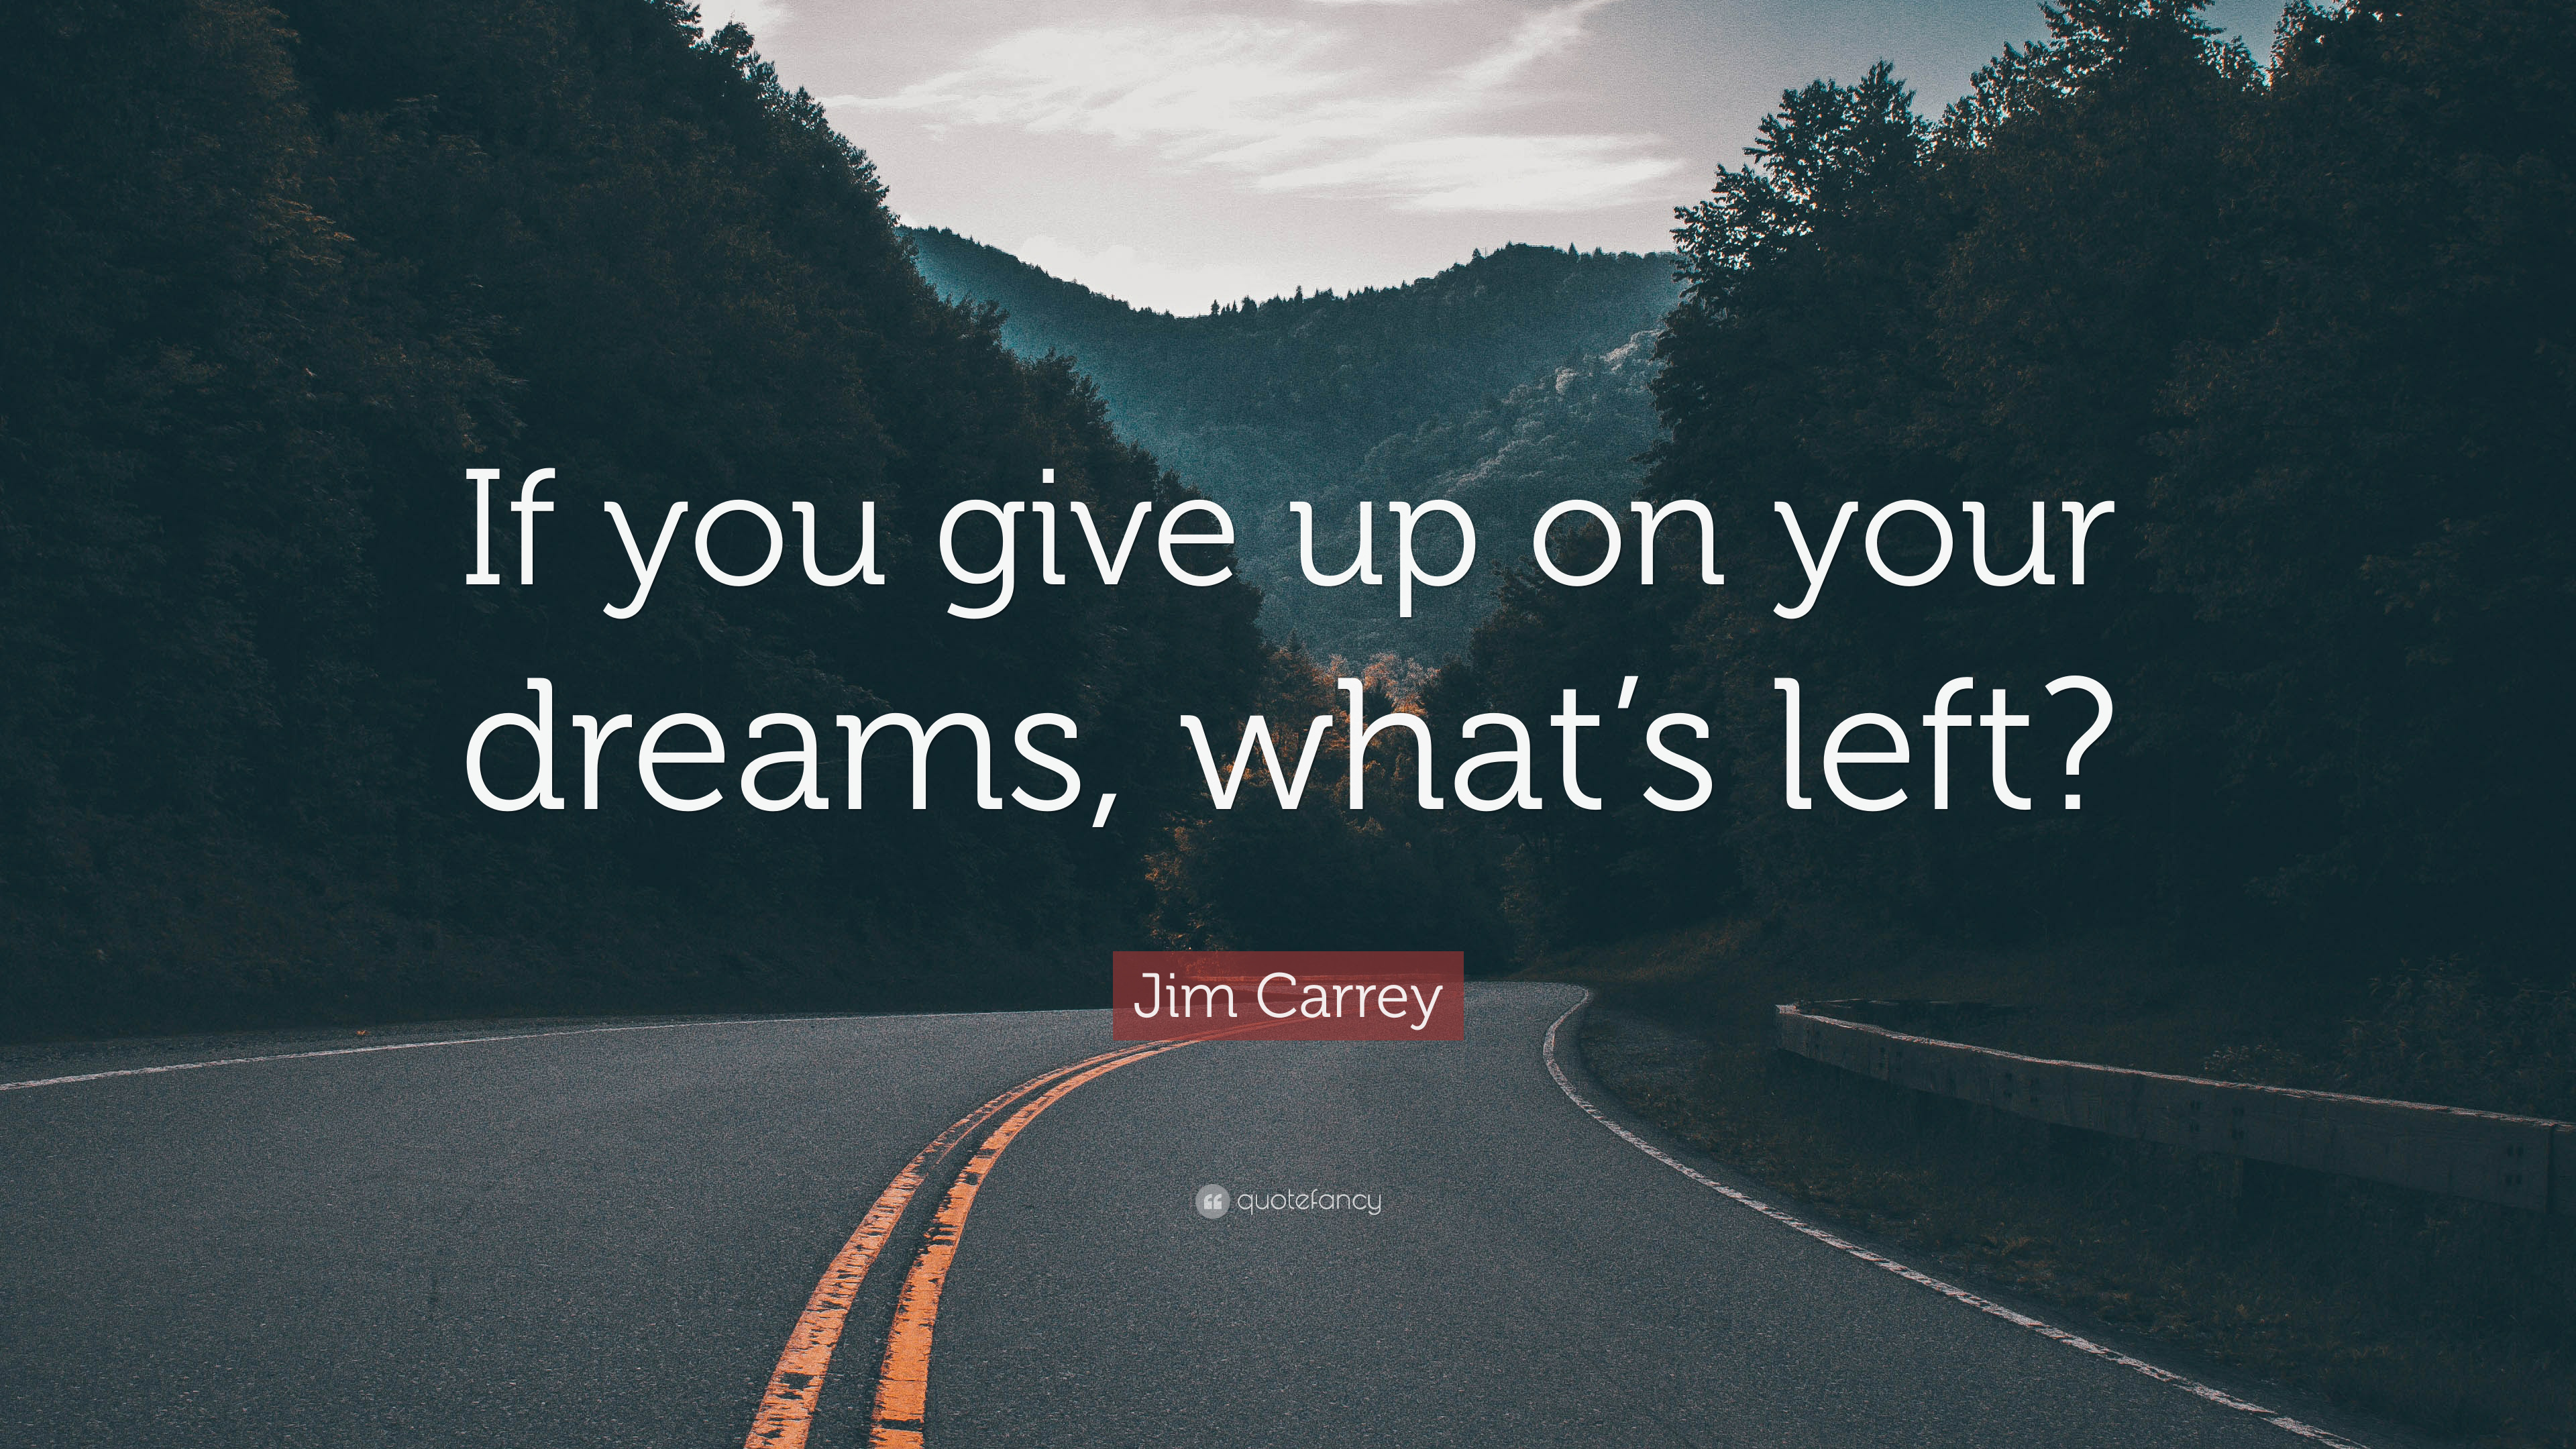 Jim Carrey Quotes (178 wallpapers) - Quotefancy